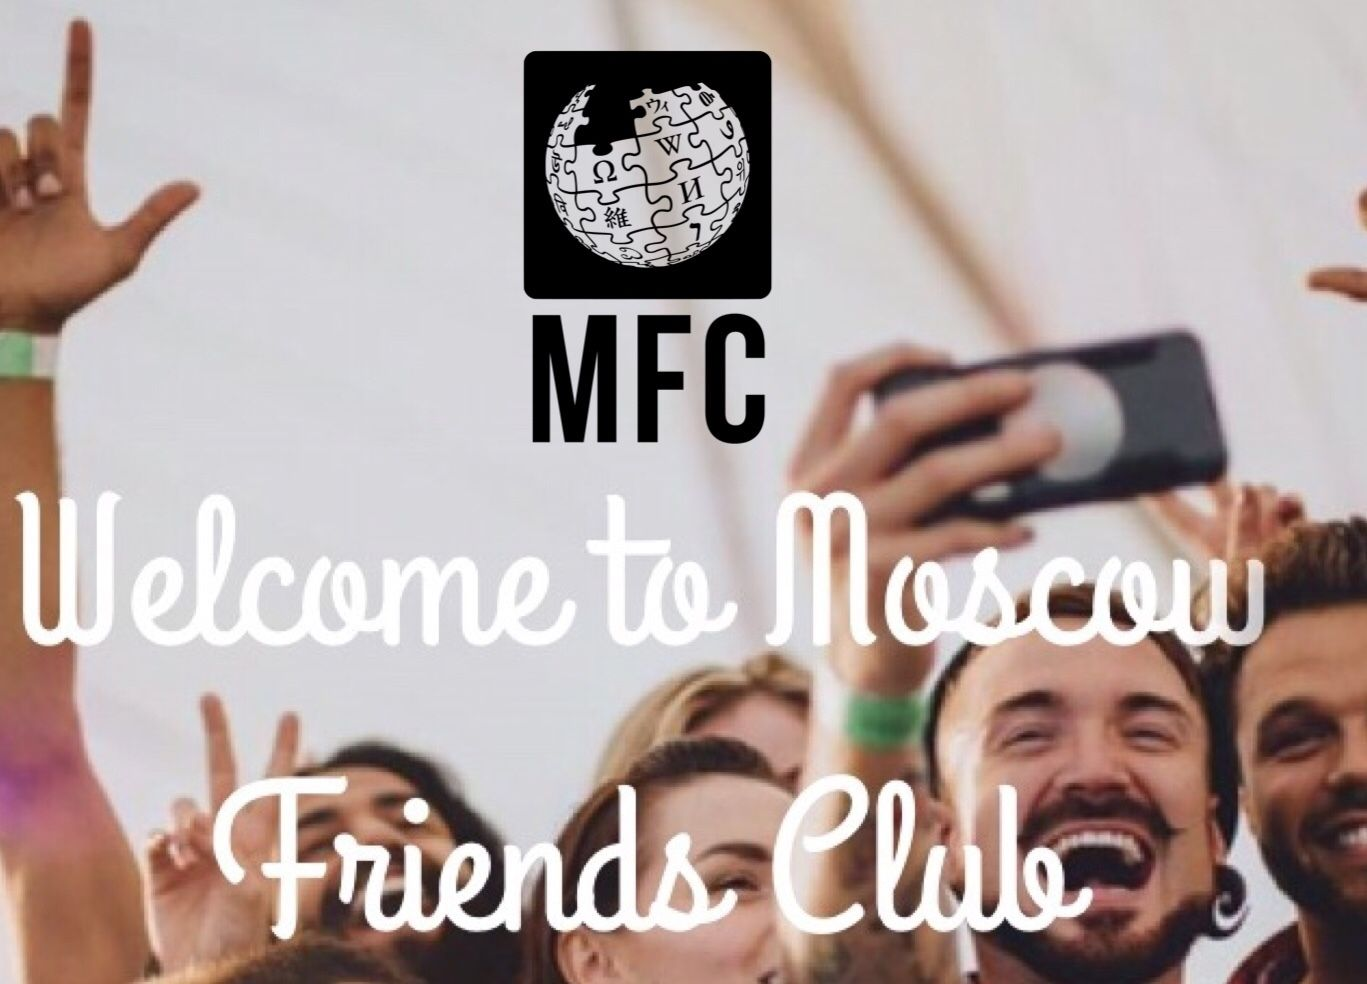 Moscow Friends Club